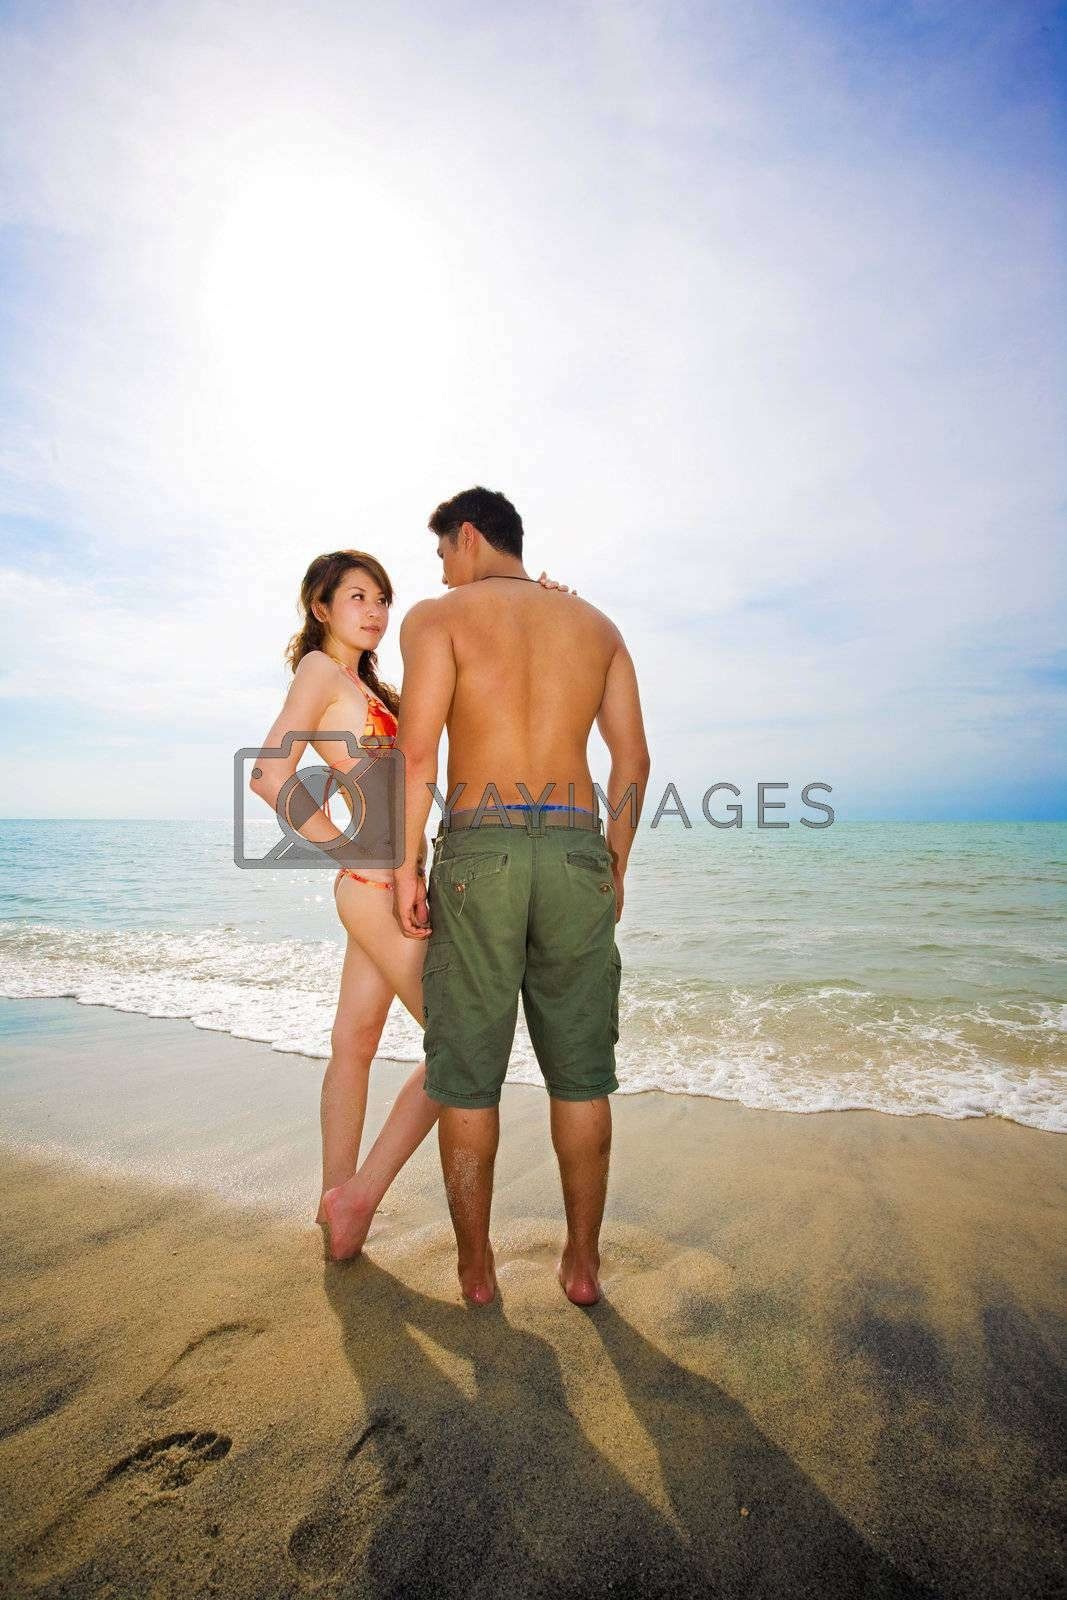 young couple enjoying romantic time by the beach